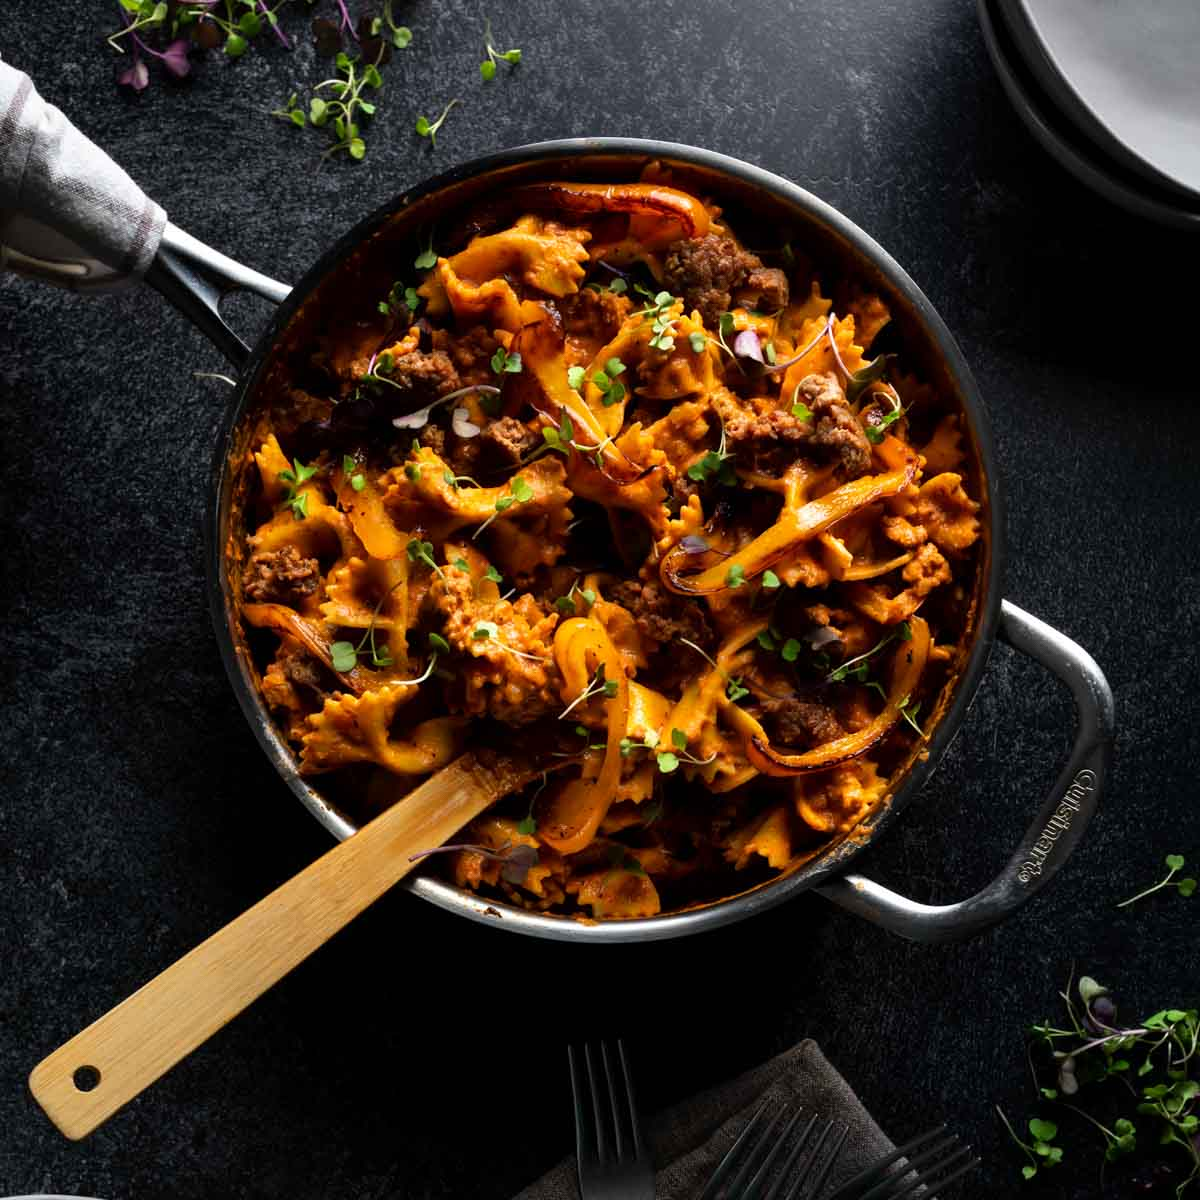 A skillet full of creamy cajun style farfalle pasta with andouille sausage that has a wooden spoon in it and a sprinkle of spicy micro greens on top